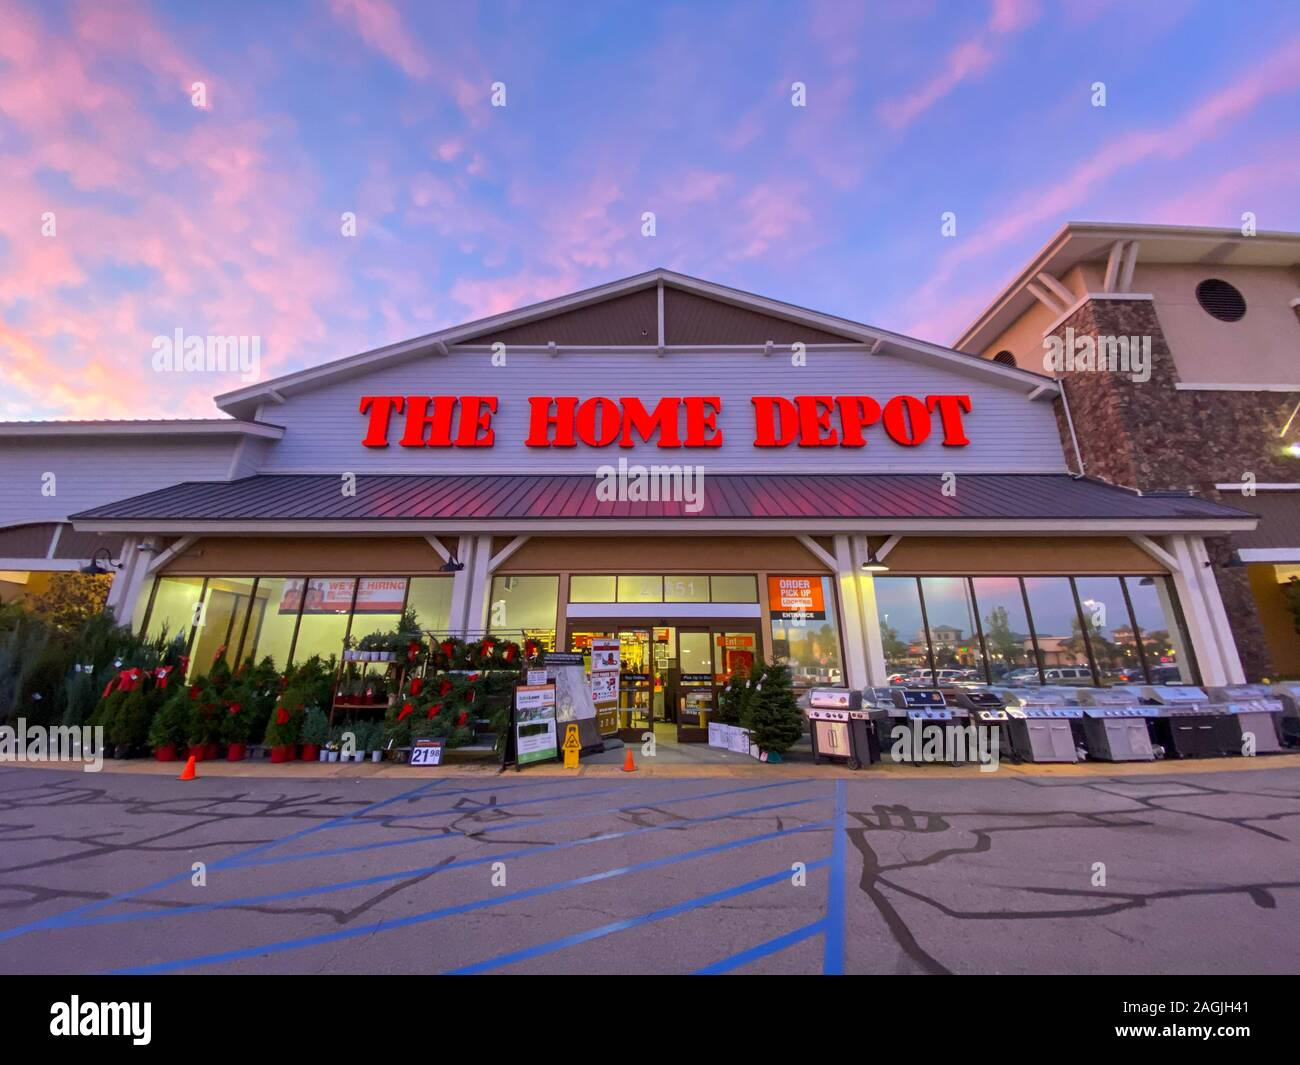 The Home Depot Store Entrance With Colorful Sunset In The